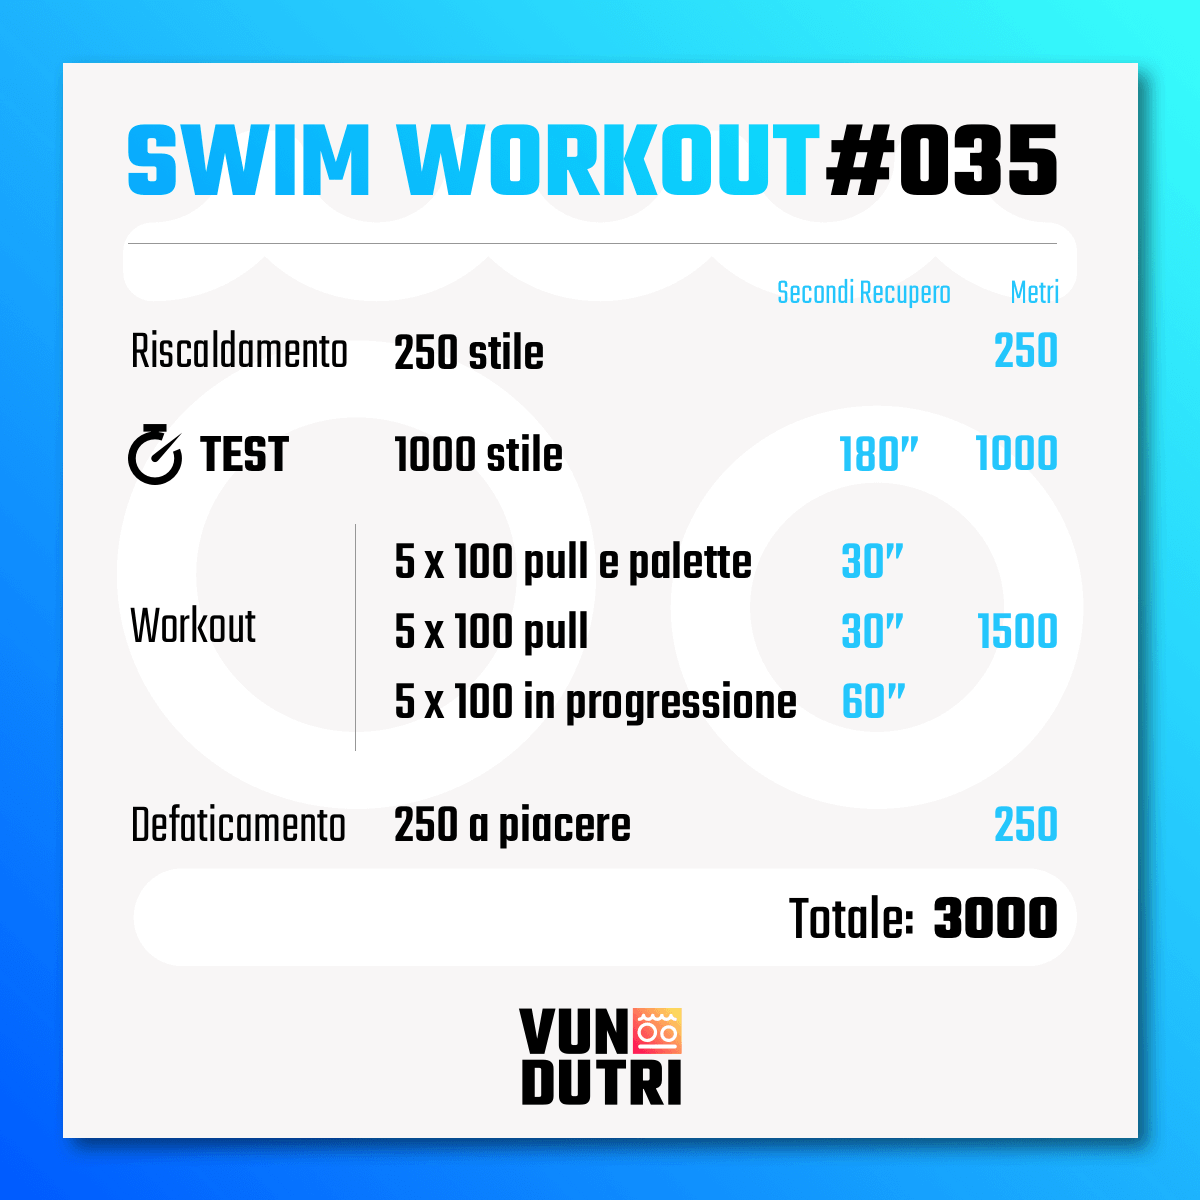 Swim workout 035